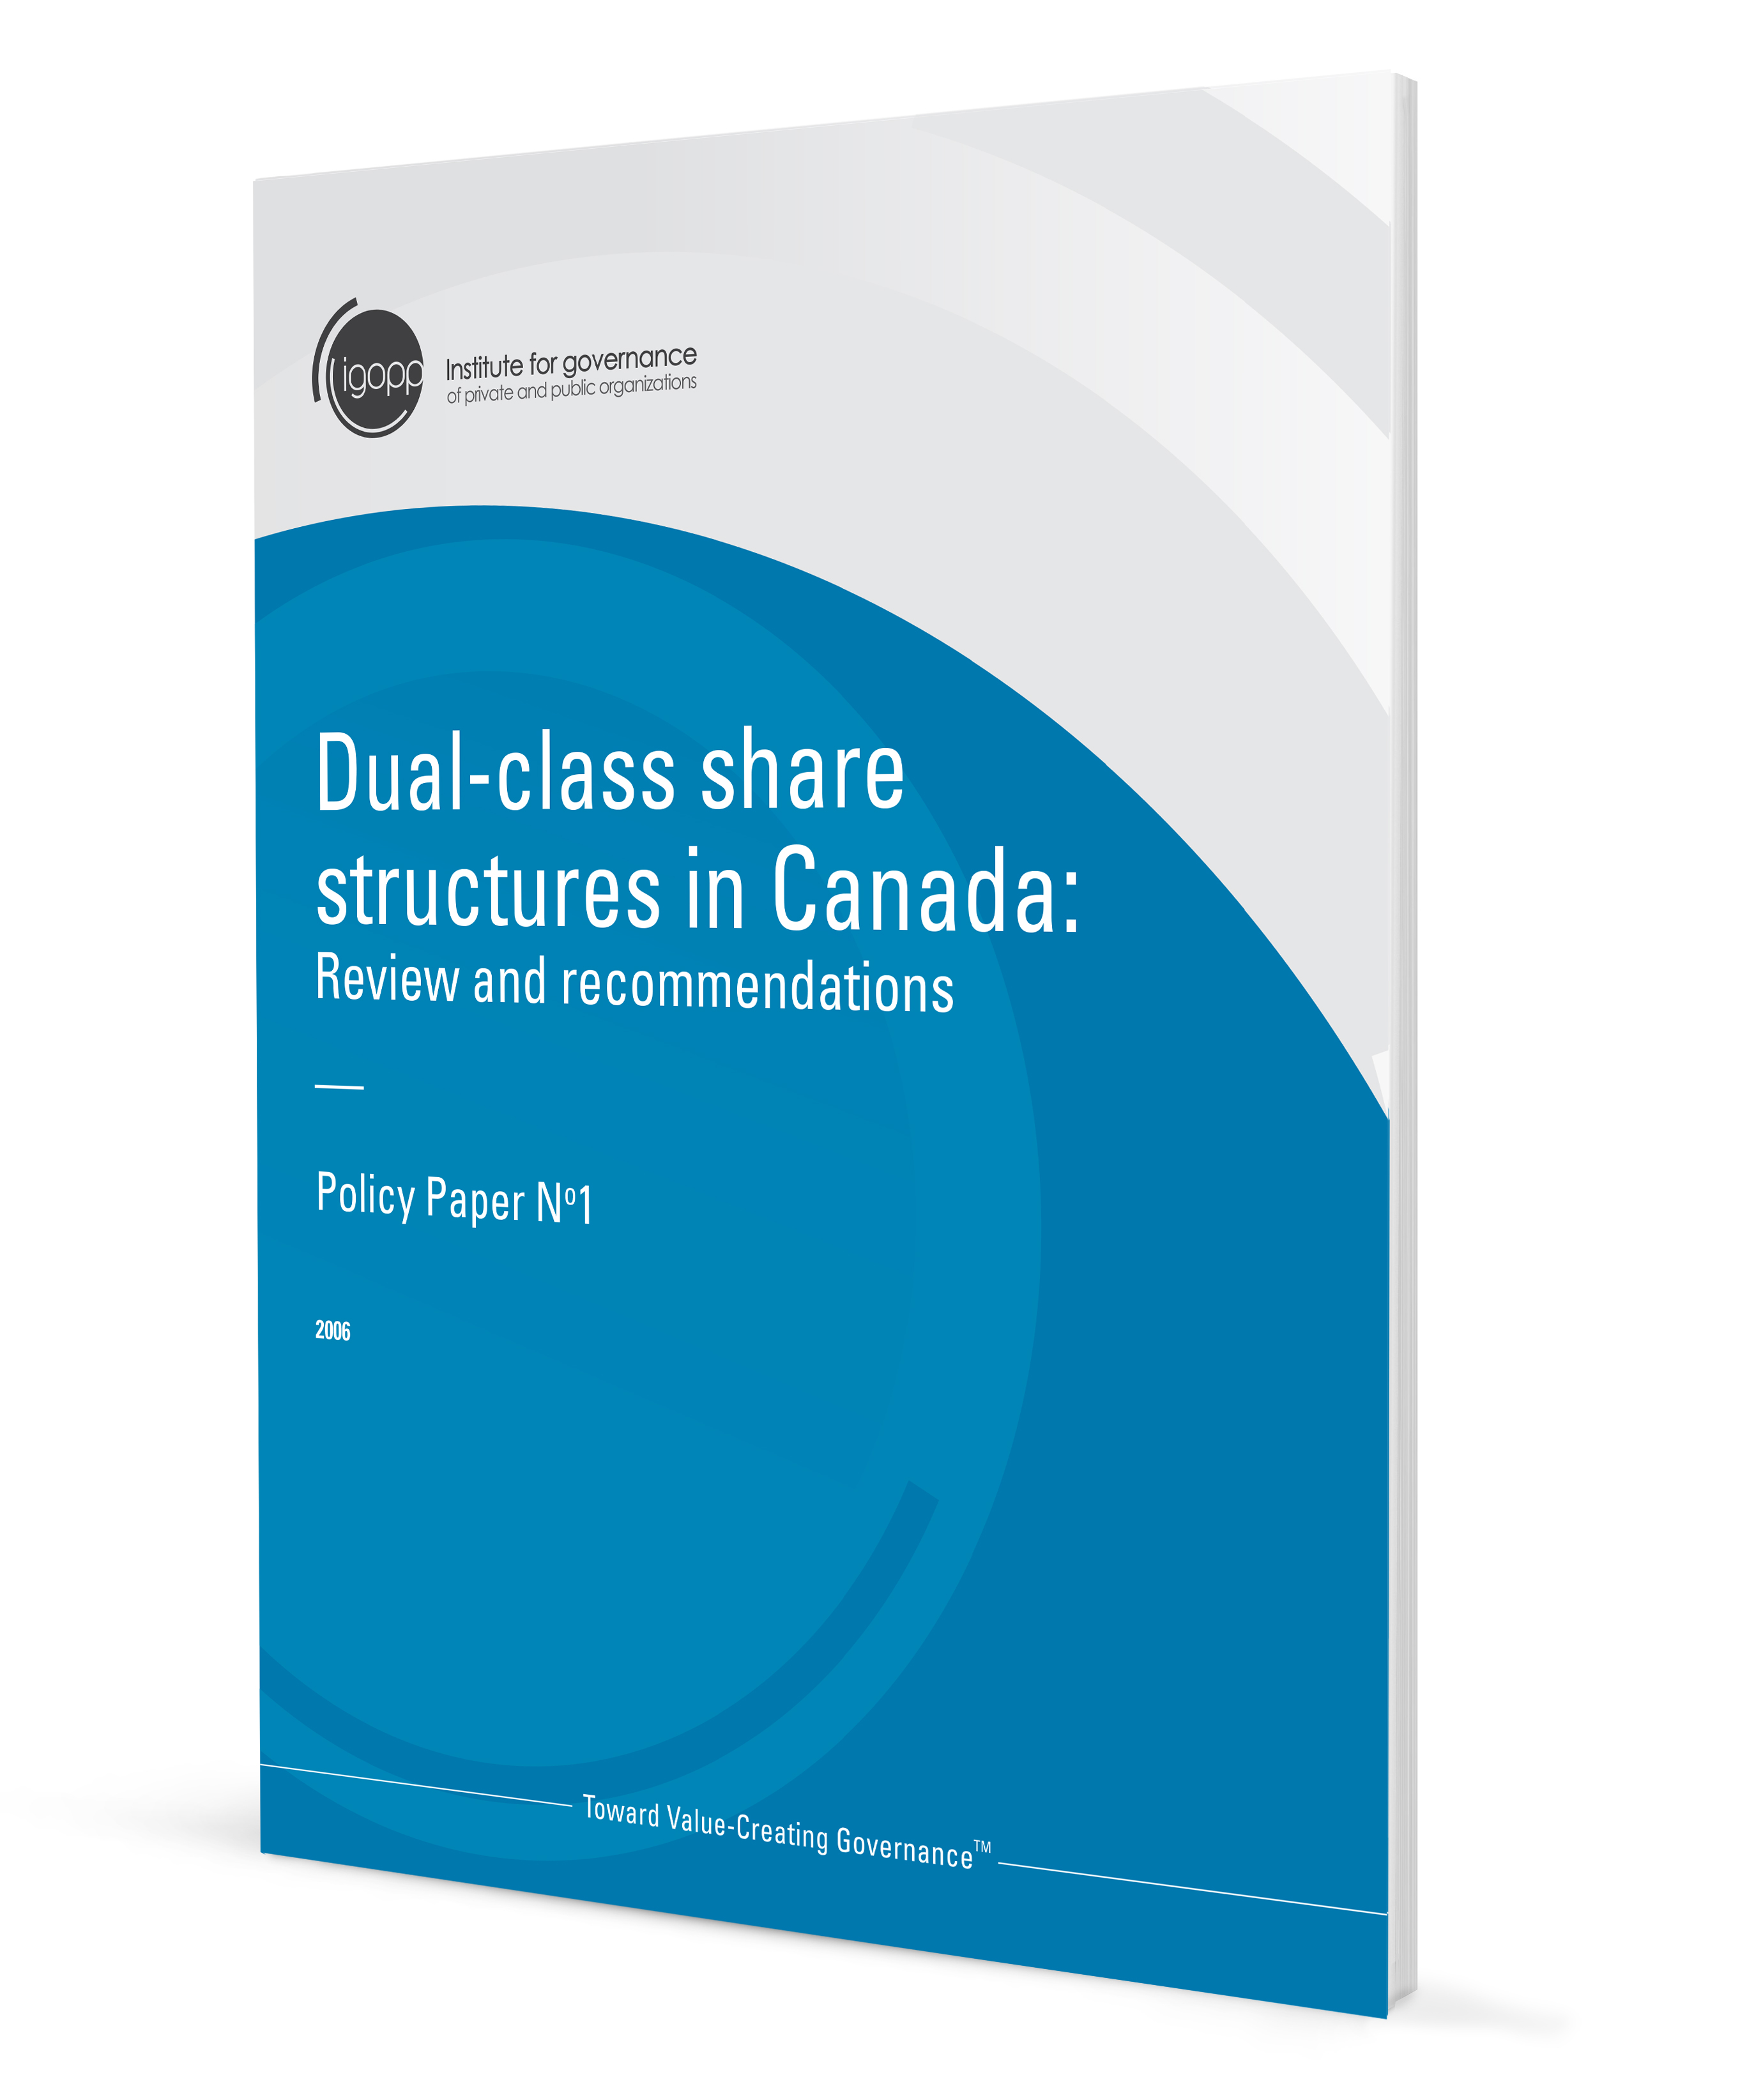 Dual-class share structures in Canada